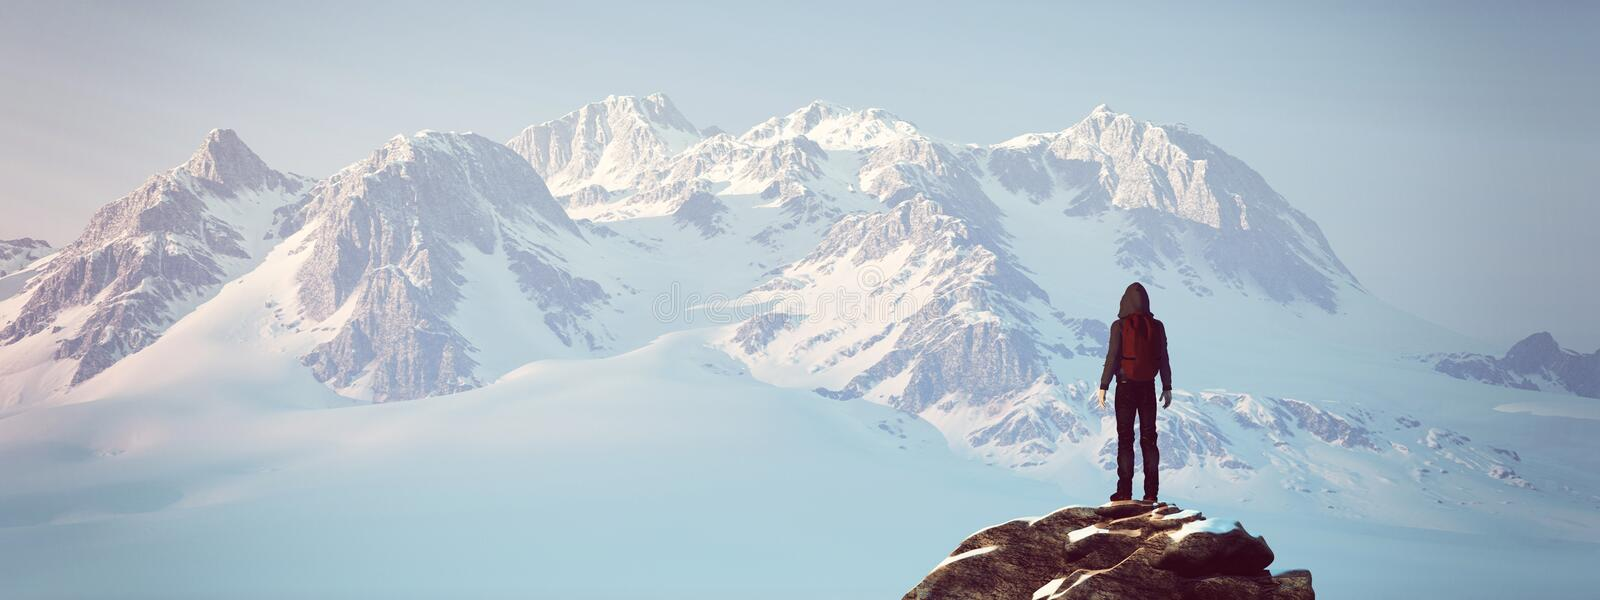 Climber on top of a mountain royalty free stock photos